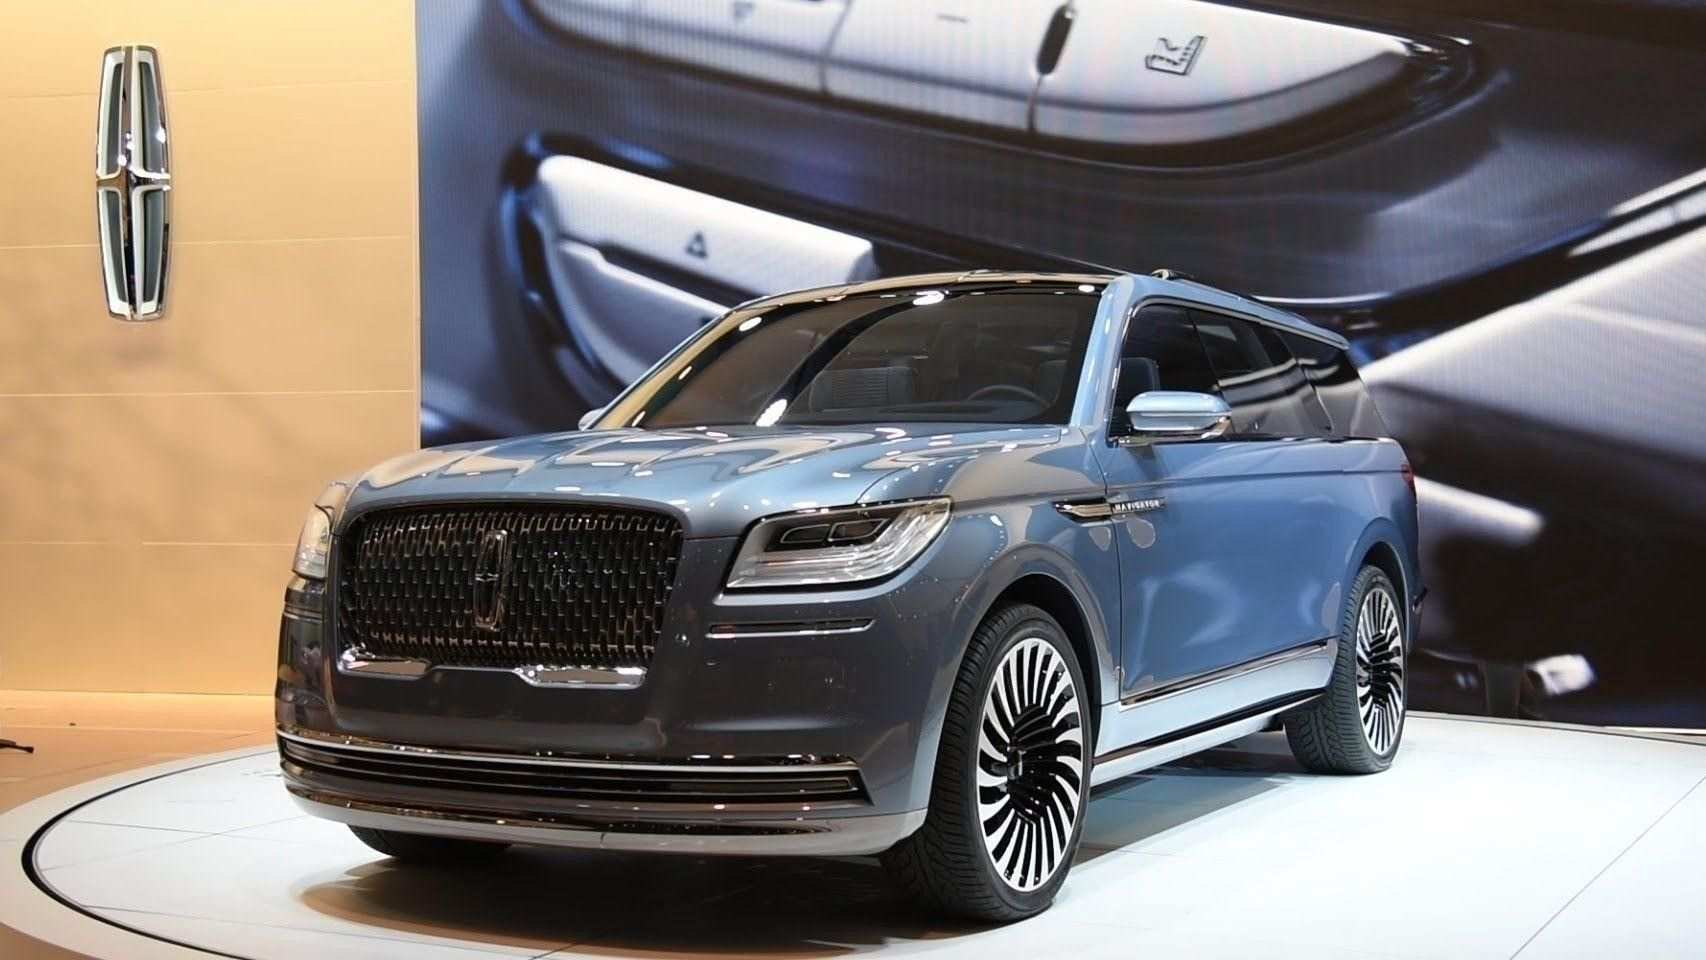 32 The Best Spy Shots Lincoln Mkz Sedan New Concept